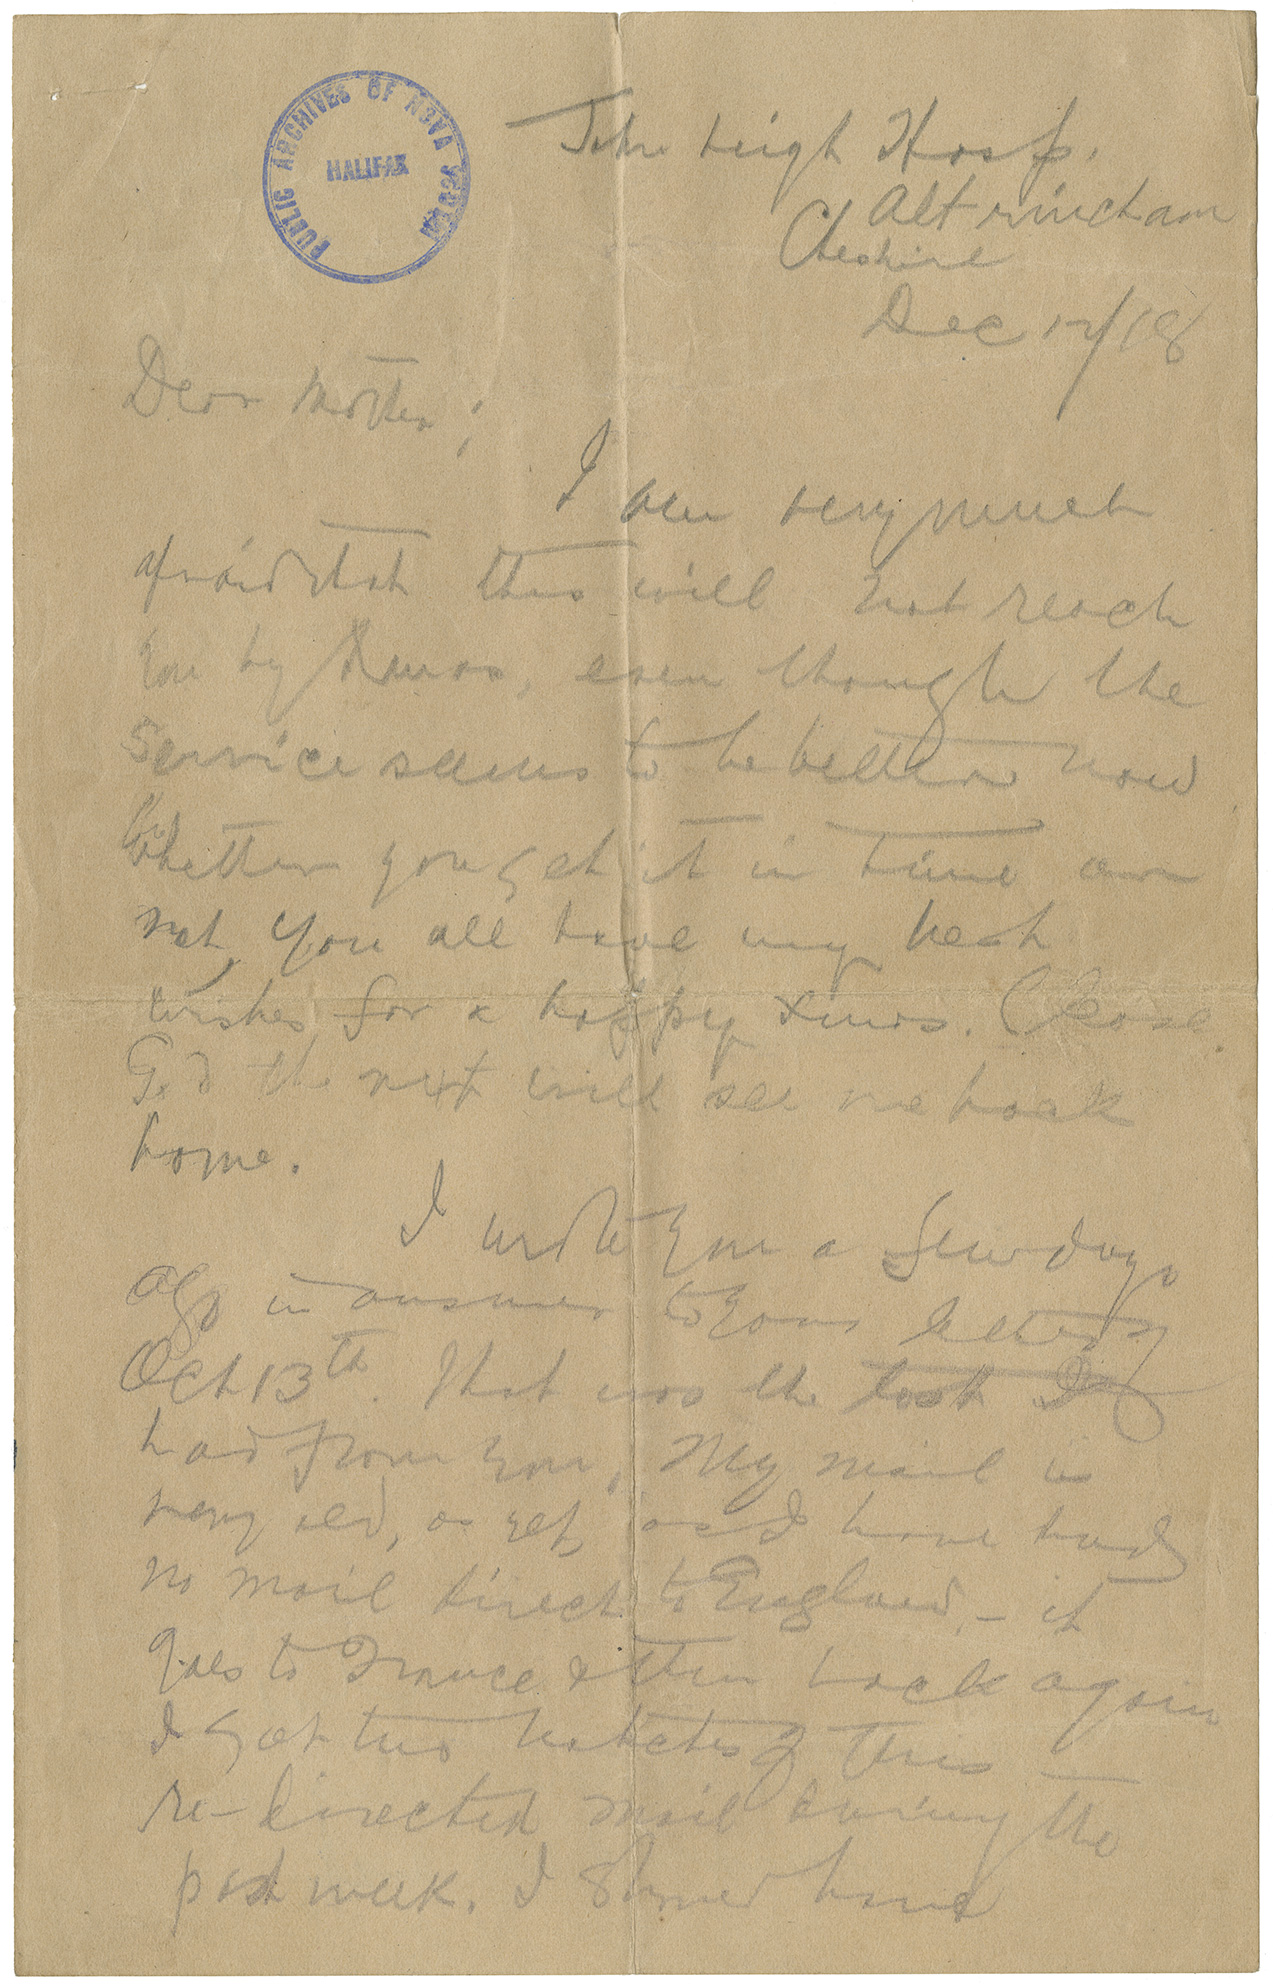 Letter from Angus L. Mcdonald to his mother